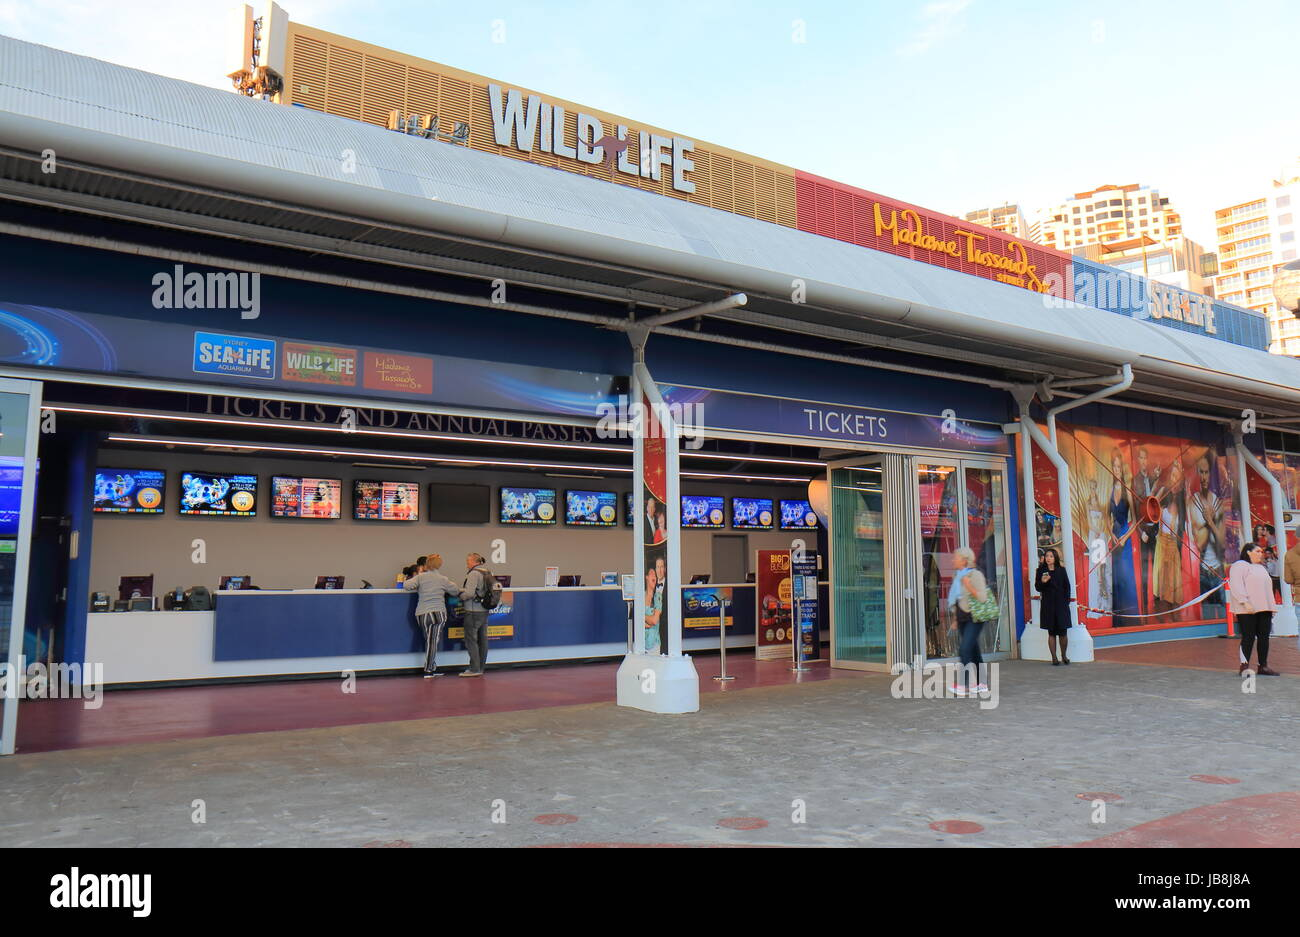 People visit ticket office for Sealife in Sydney Australia. Wildlife and Madame Tussauds. - Stock Image